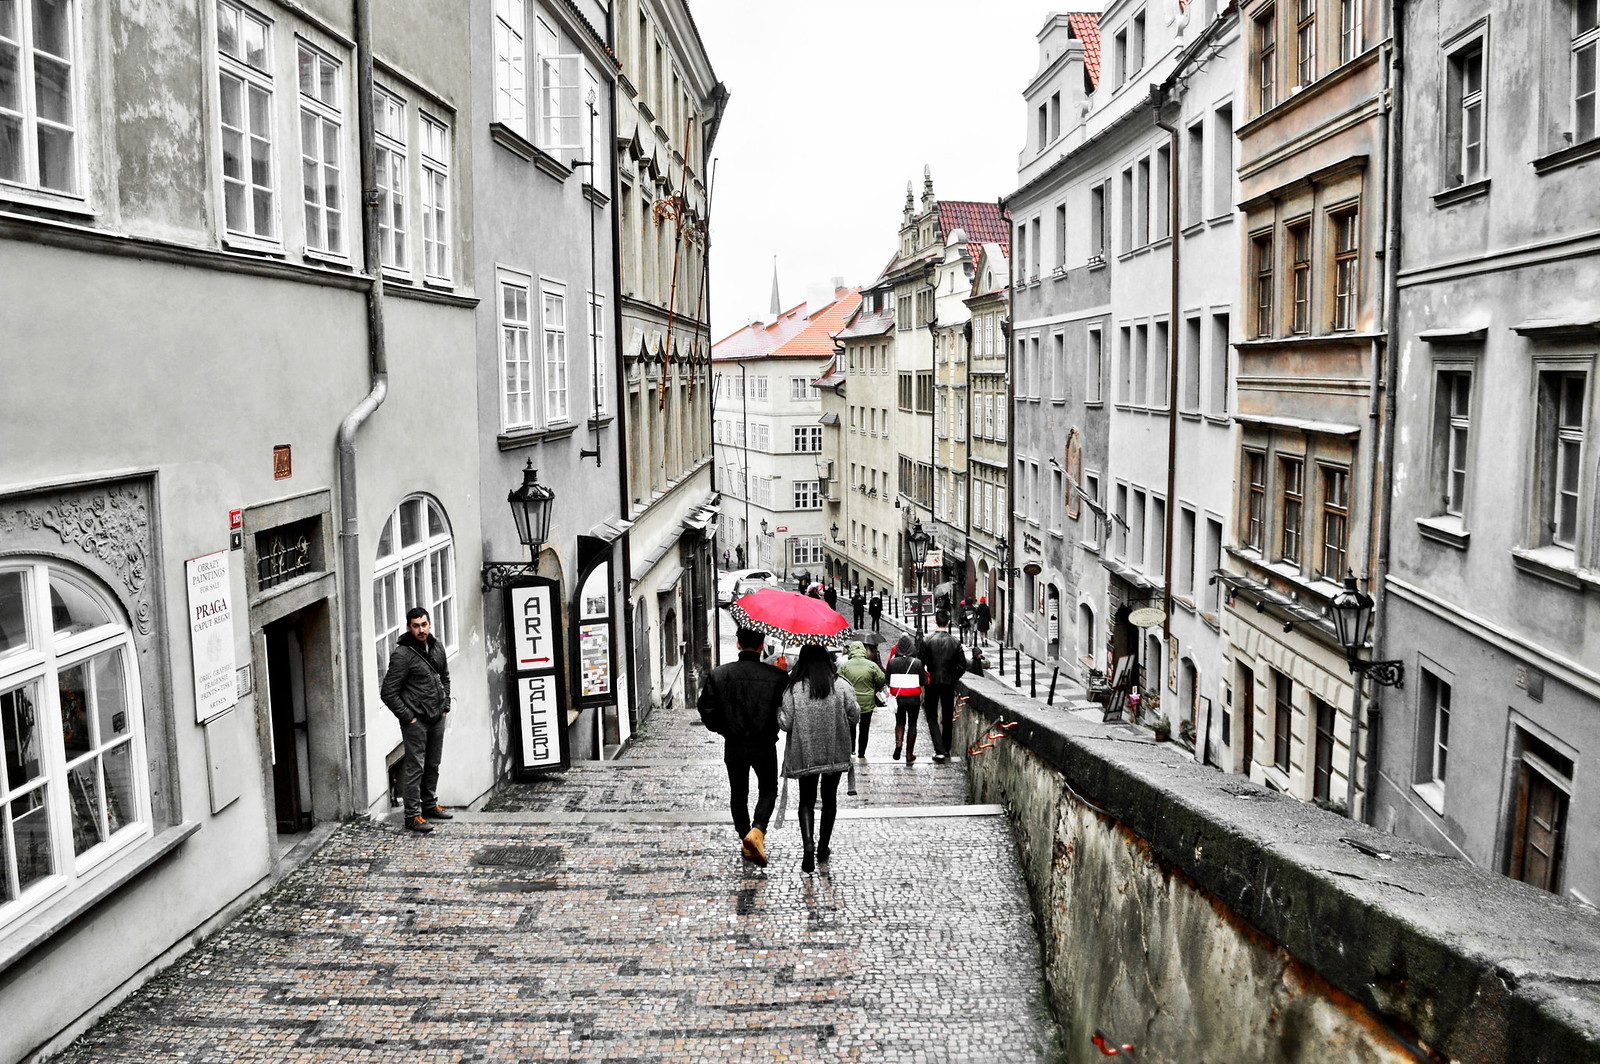 Prague on a rainy day